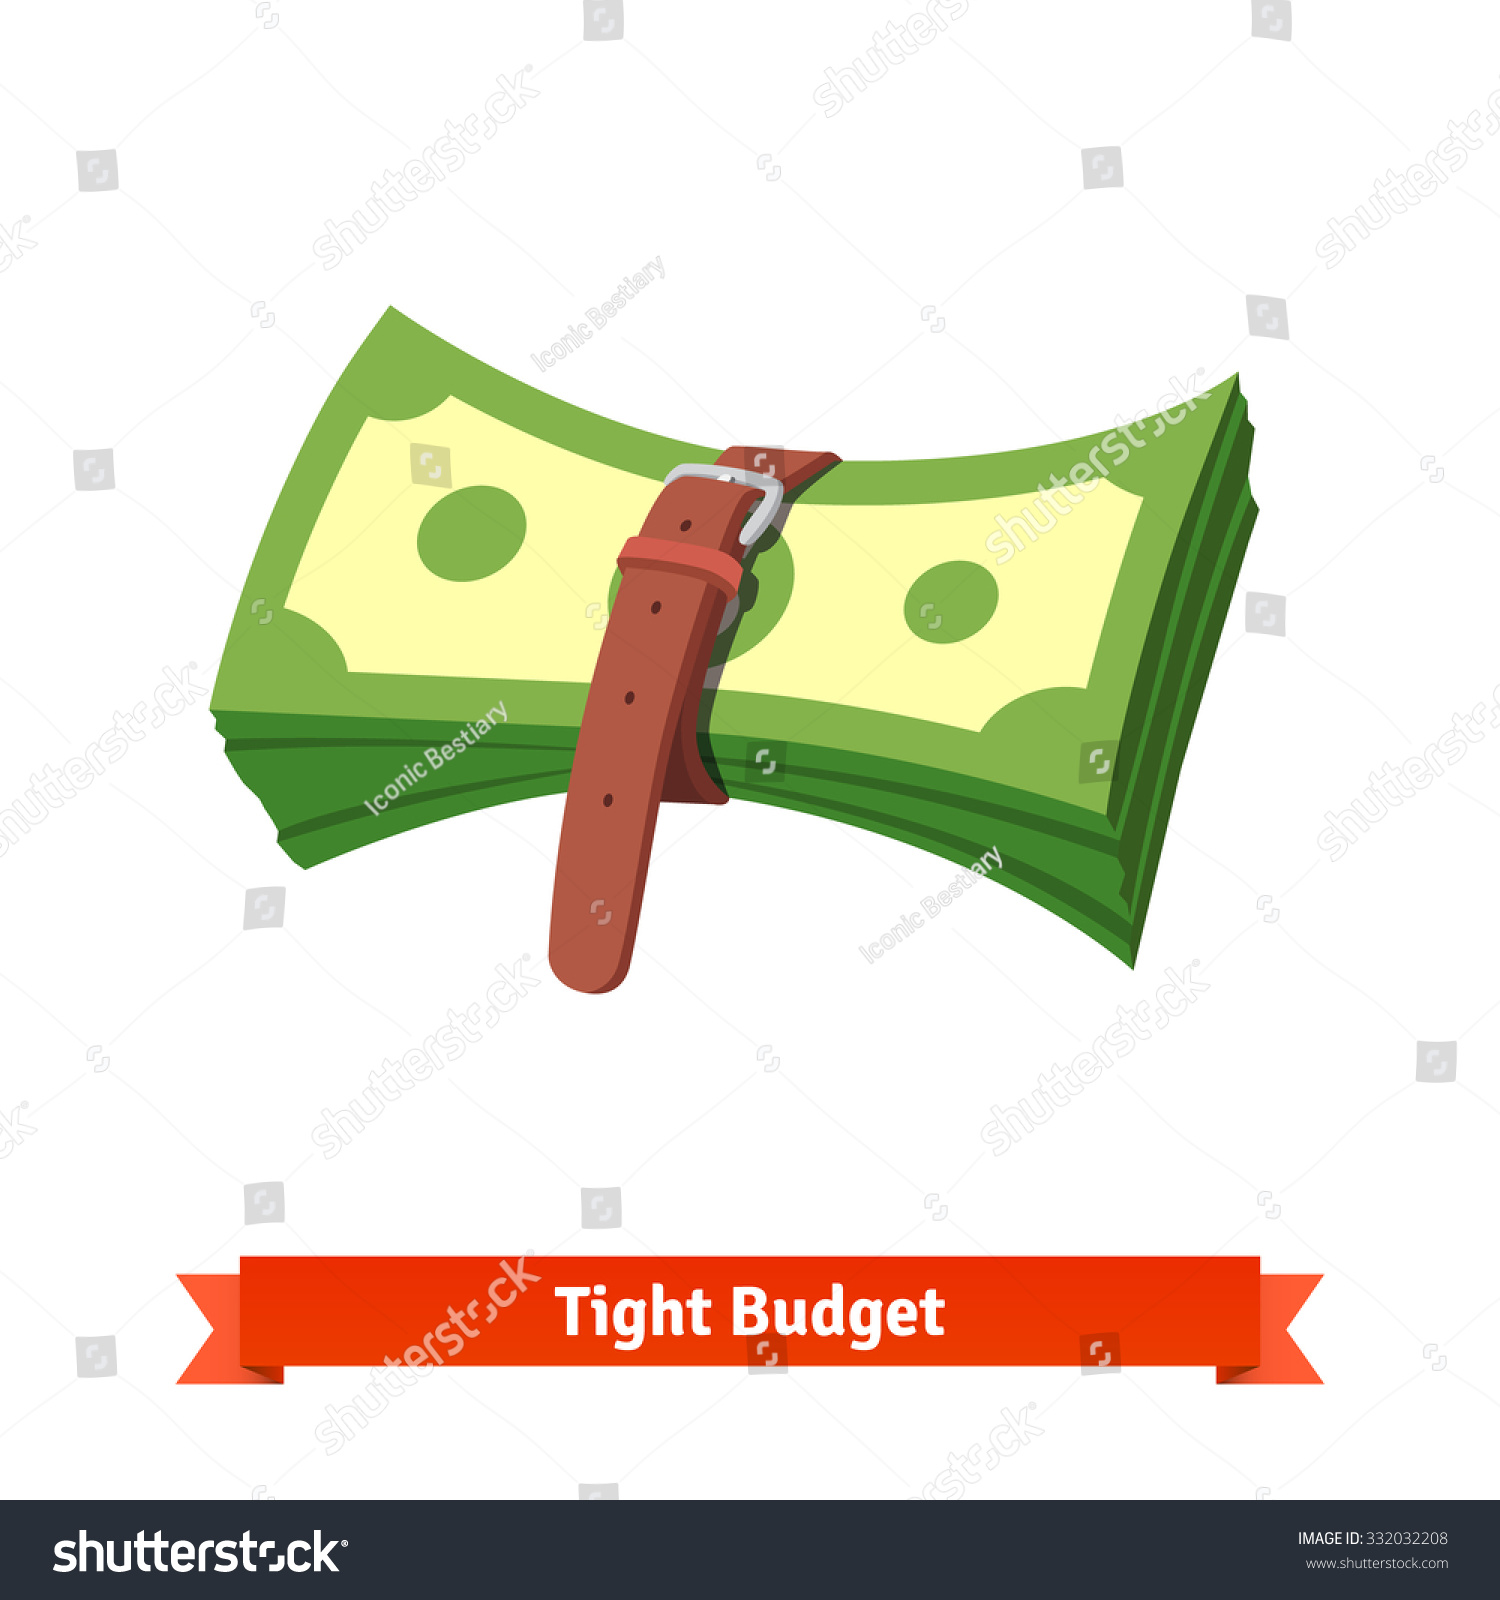 Tight Budget And Recession Shrinking Economy Concept. Pack Of Money Dollar Bills Squeezed By Leather Strap Belt. Flat Style Vector Illustration ...